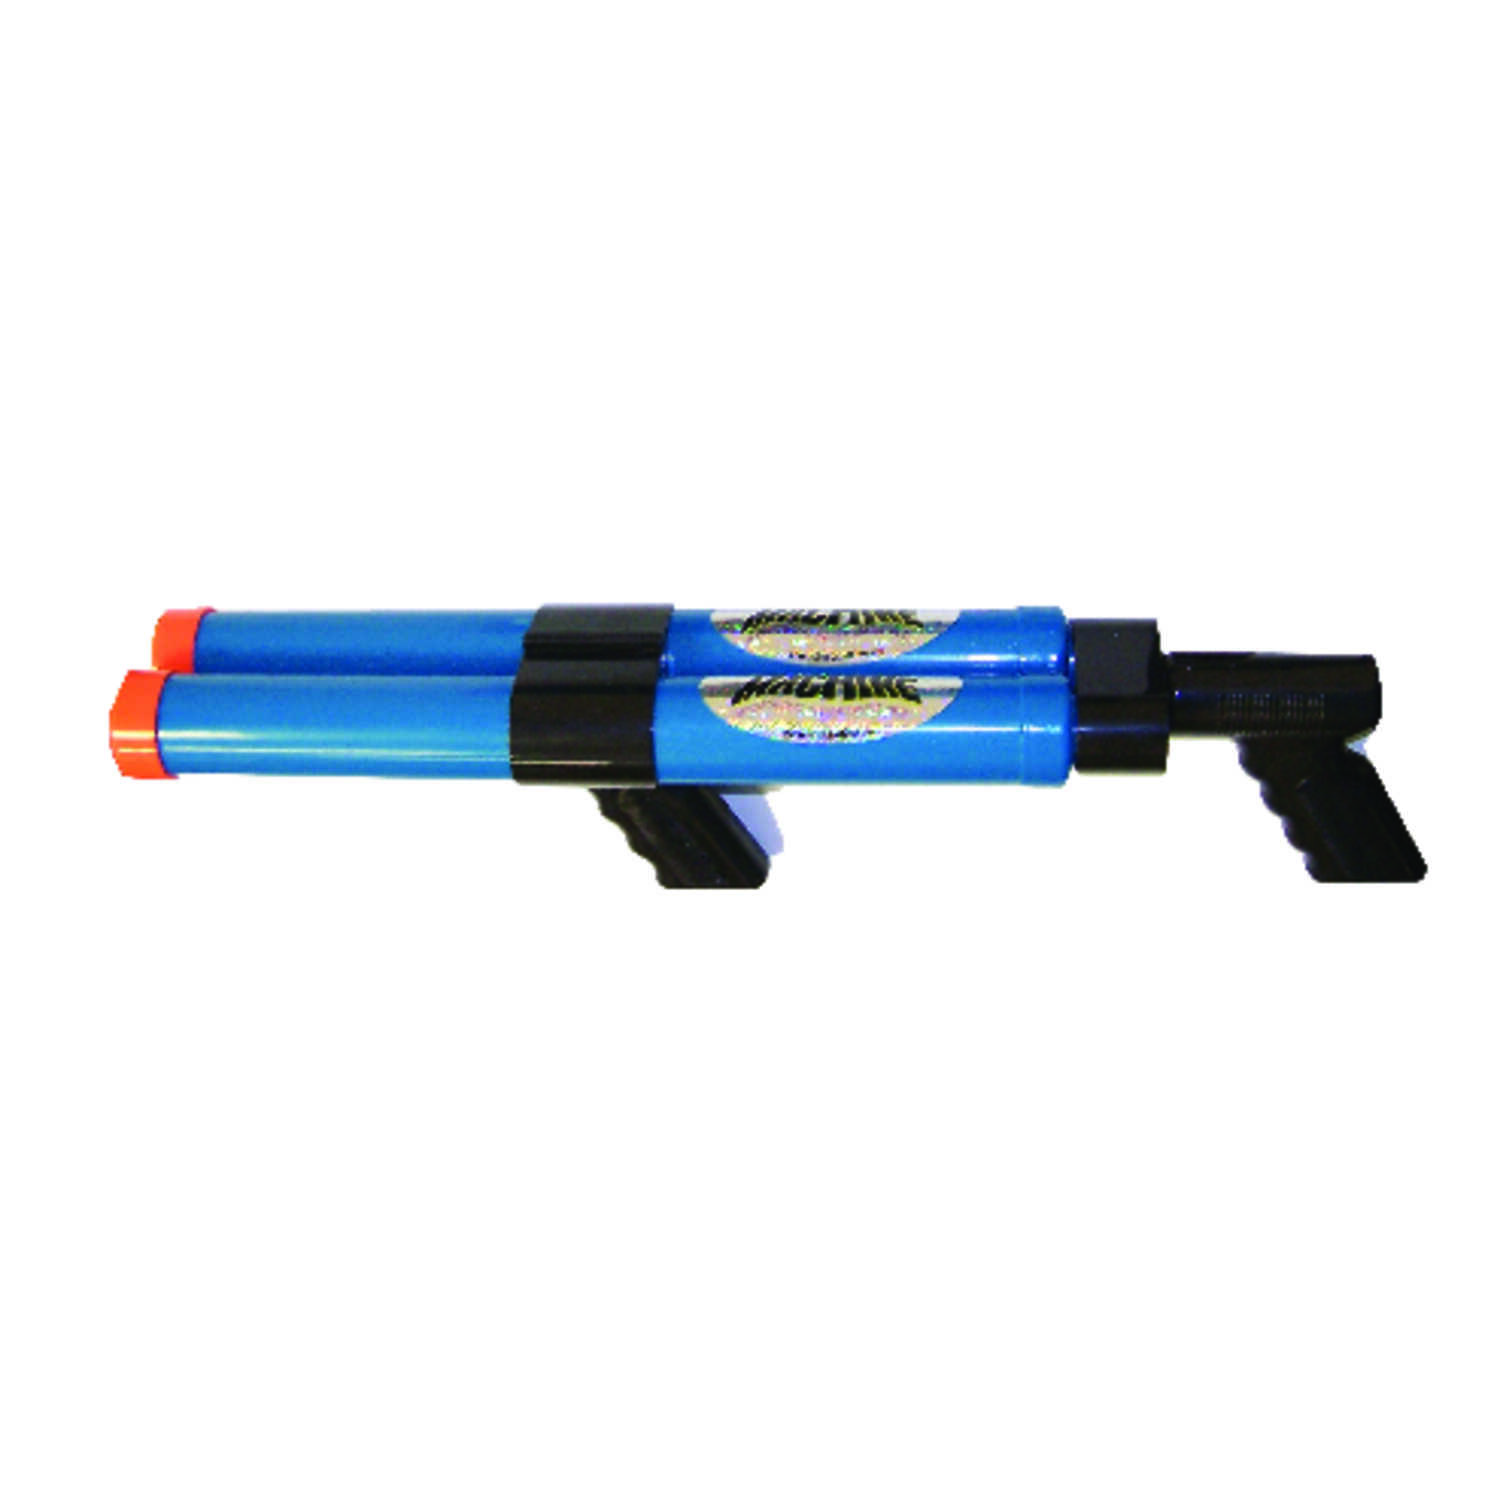 Water Sports  Double Barrel Stream Machine  Polypropylene  Assorted  Water Gun  23 in. L